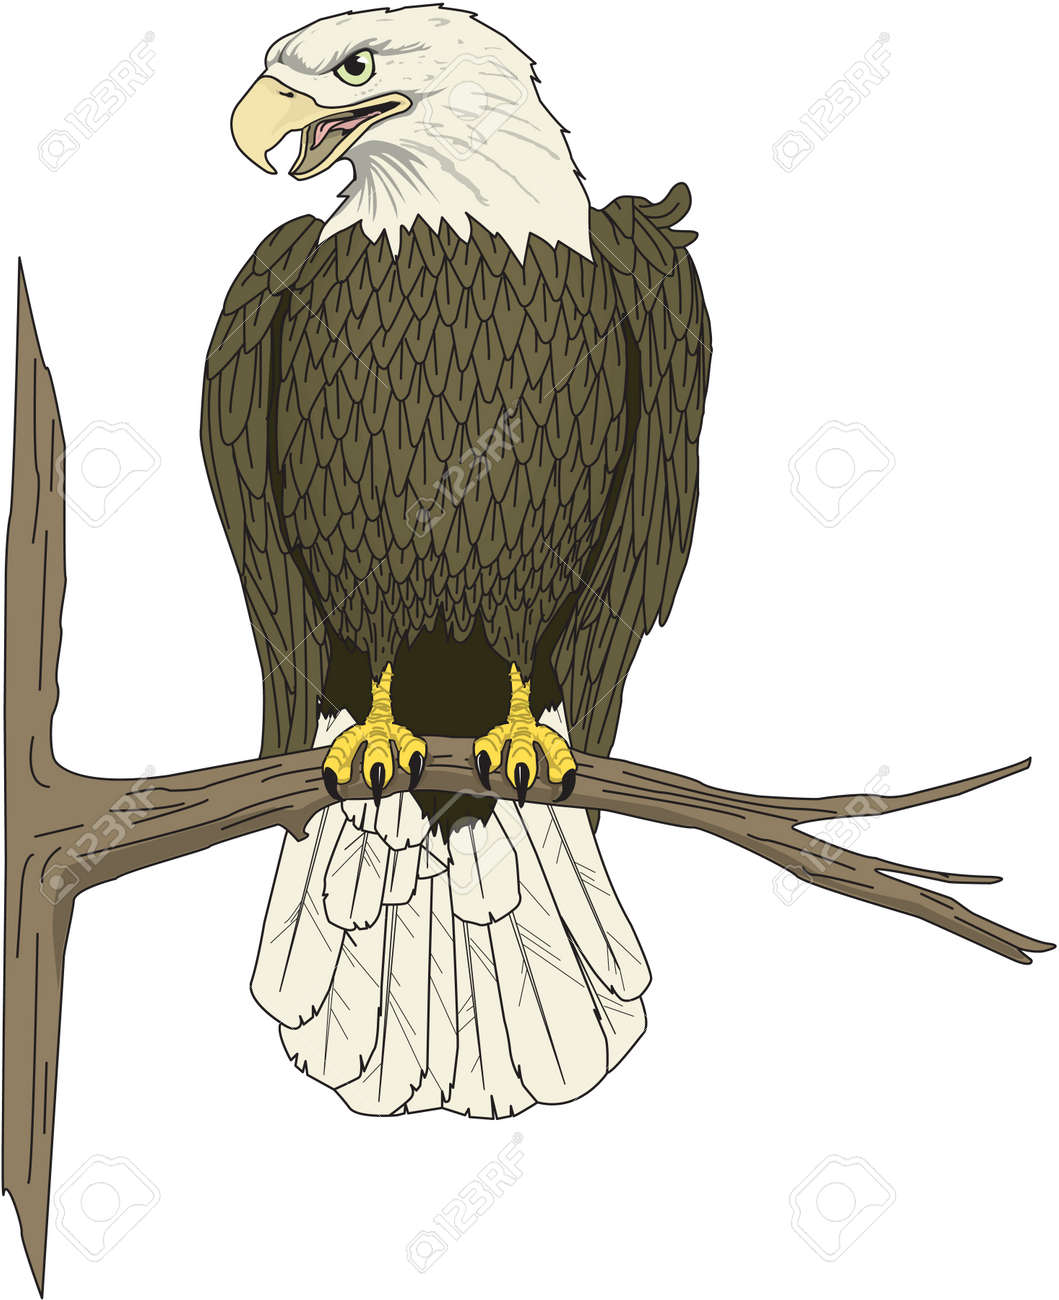 eagle perched illustration royalty free cliparts vectors and stock